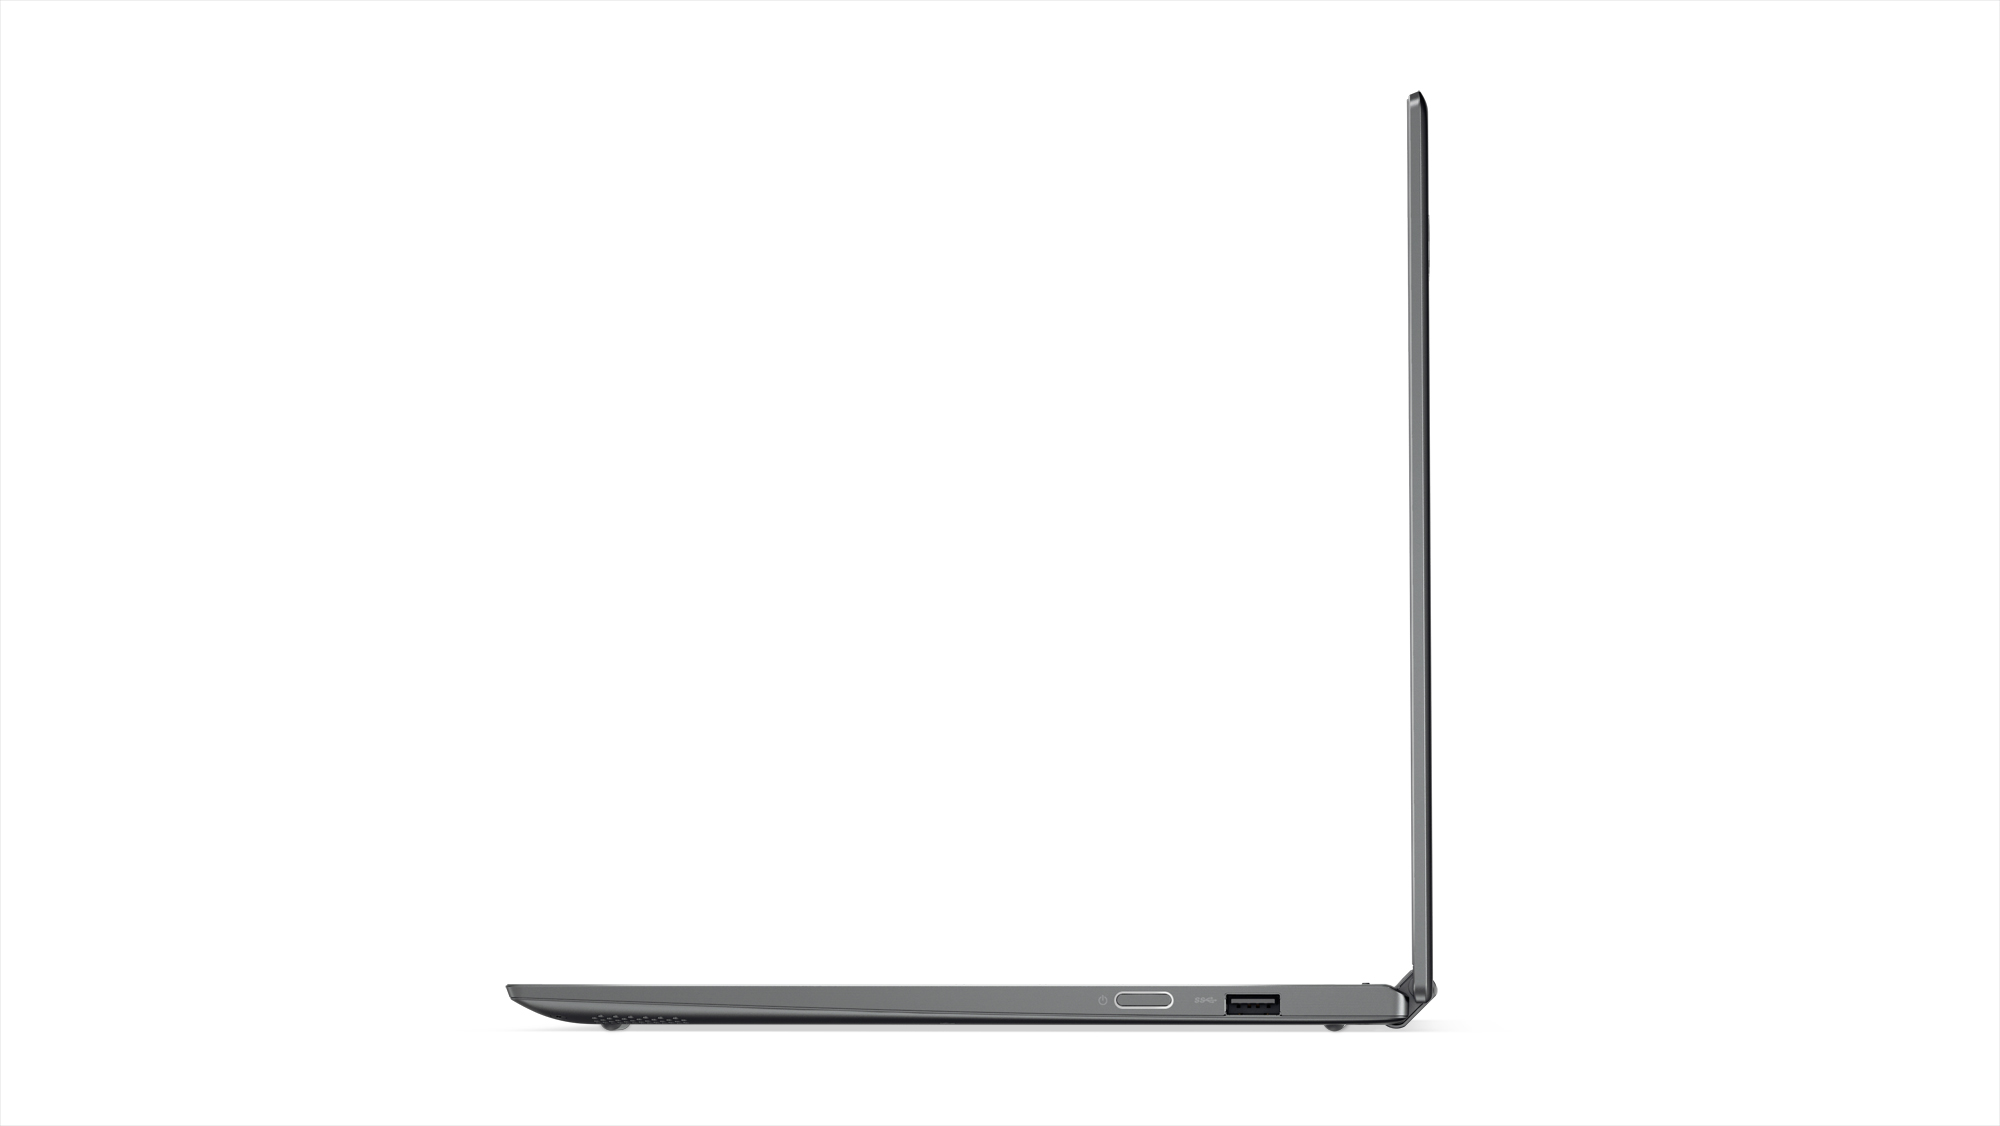 Фото  Ультрабук Lenovo Yoga 720 Iron Grey (81C300A1RA)